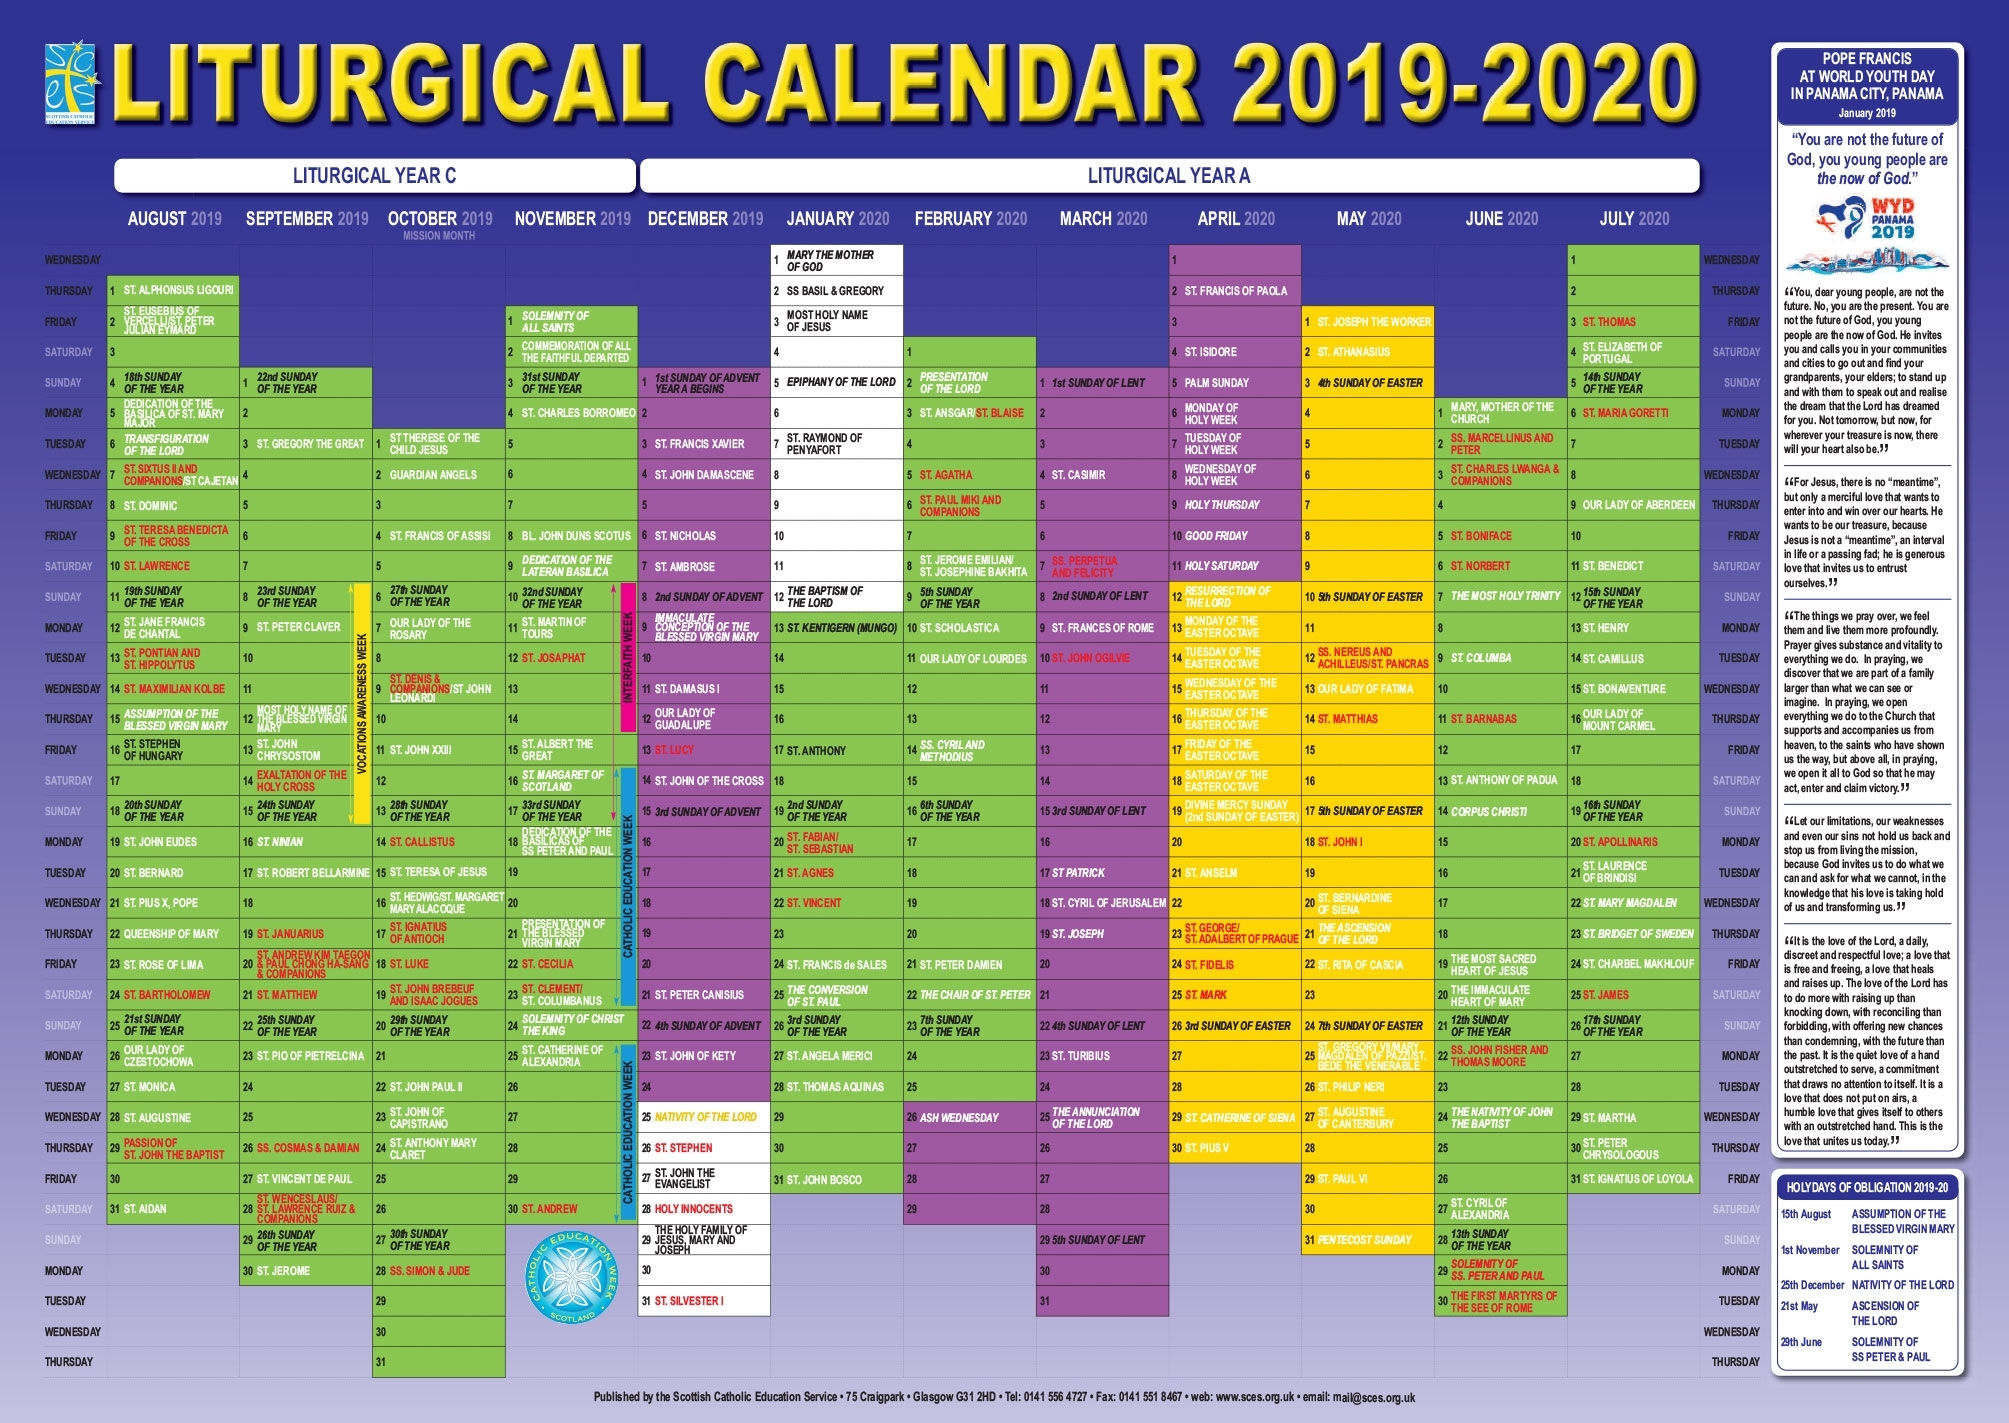 Scottish Catholic Education Service | Sces | Liturgical pertaining to Year A Liturgical Calendar 2020